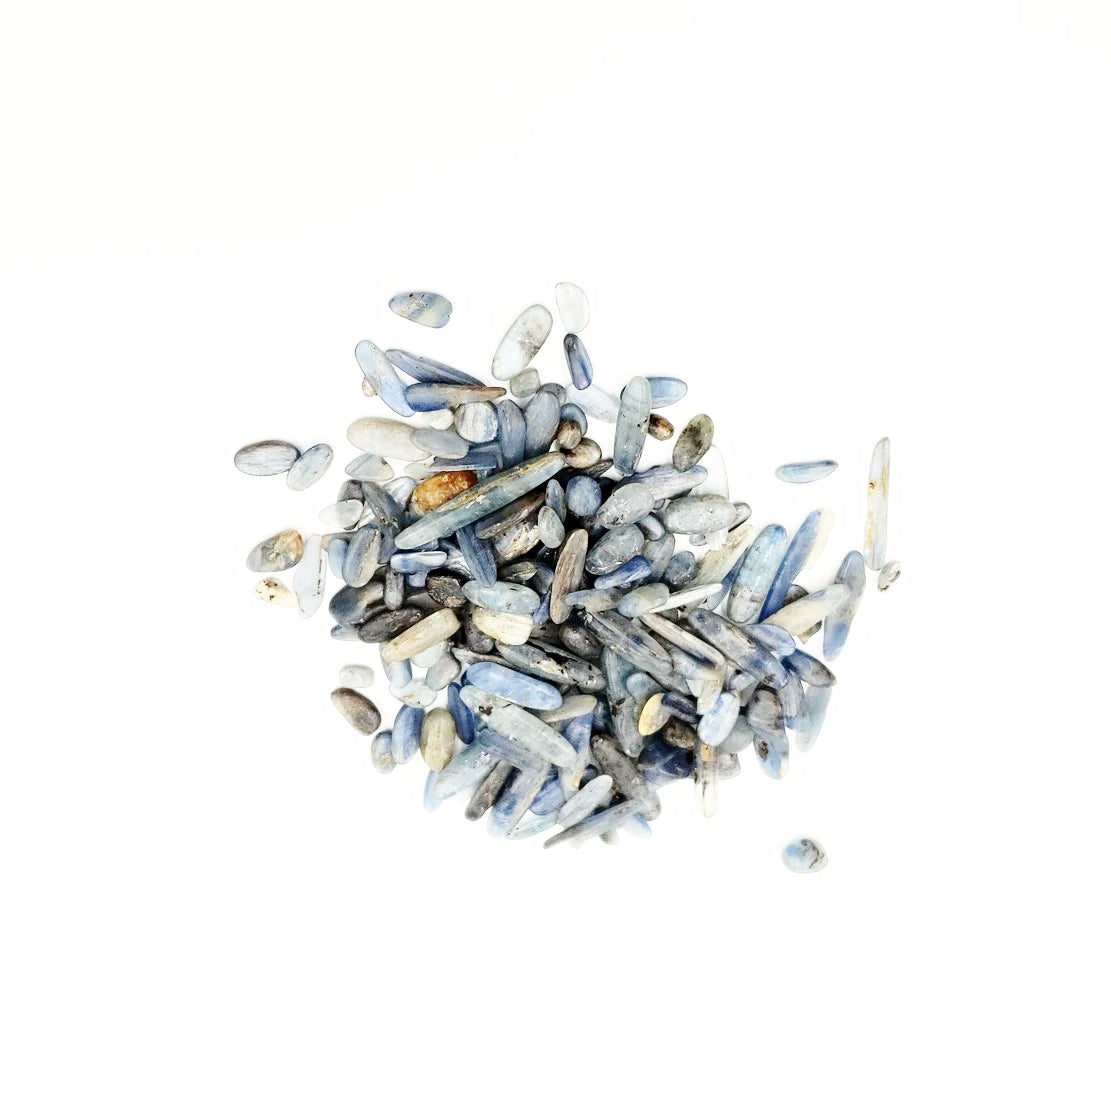 Blue Kyanite Chips - Elevated Metaphysical